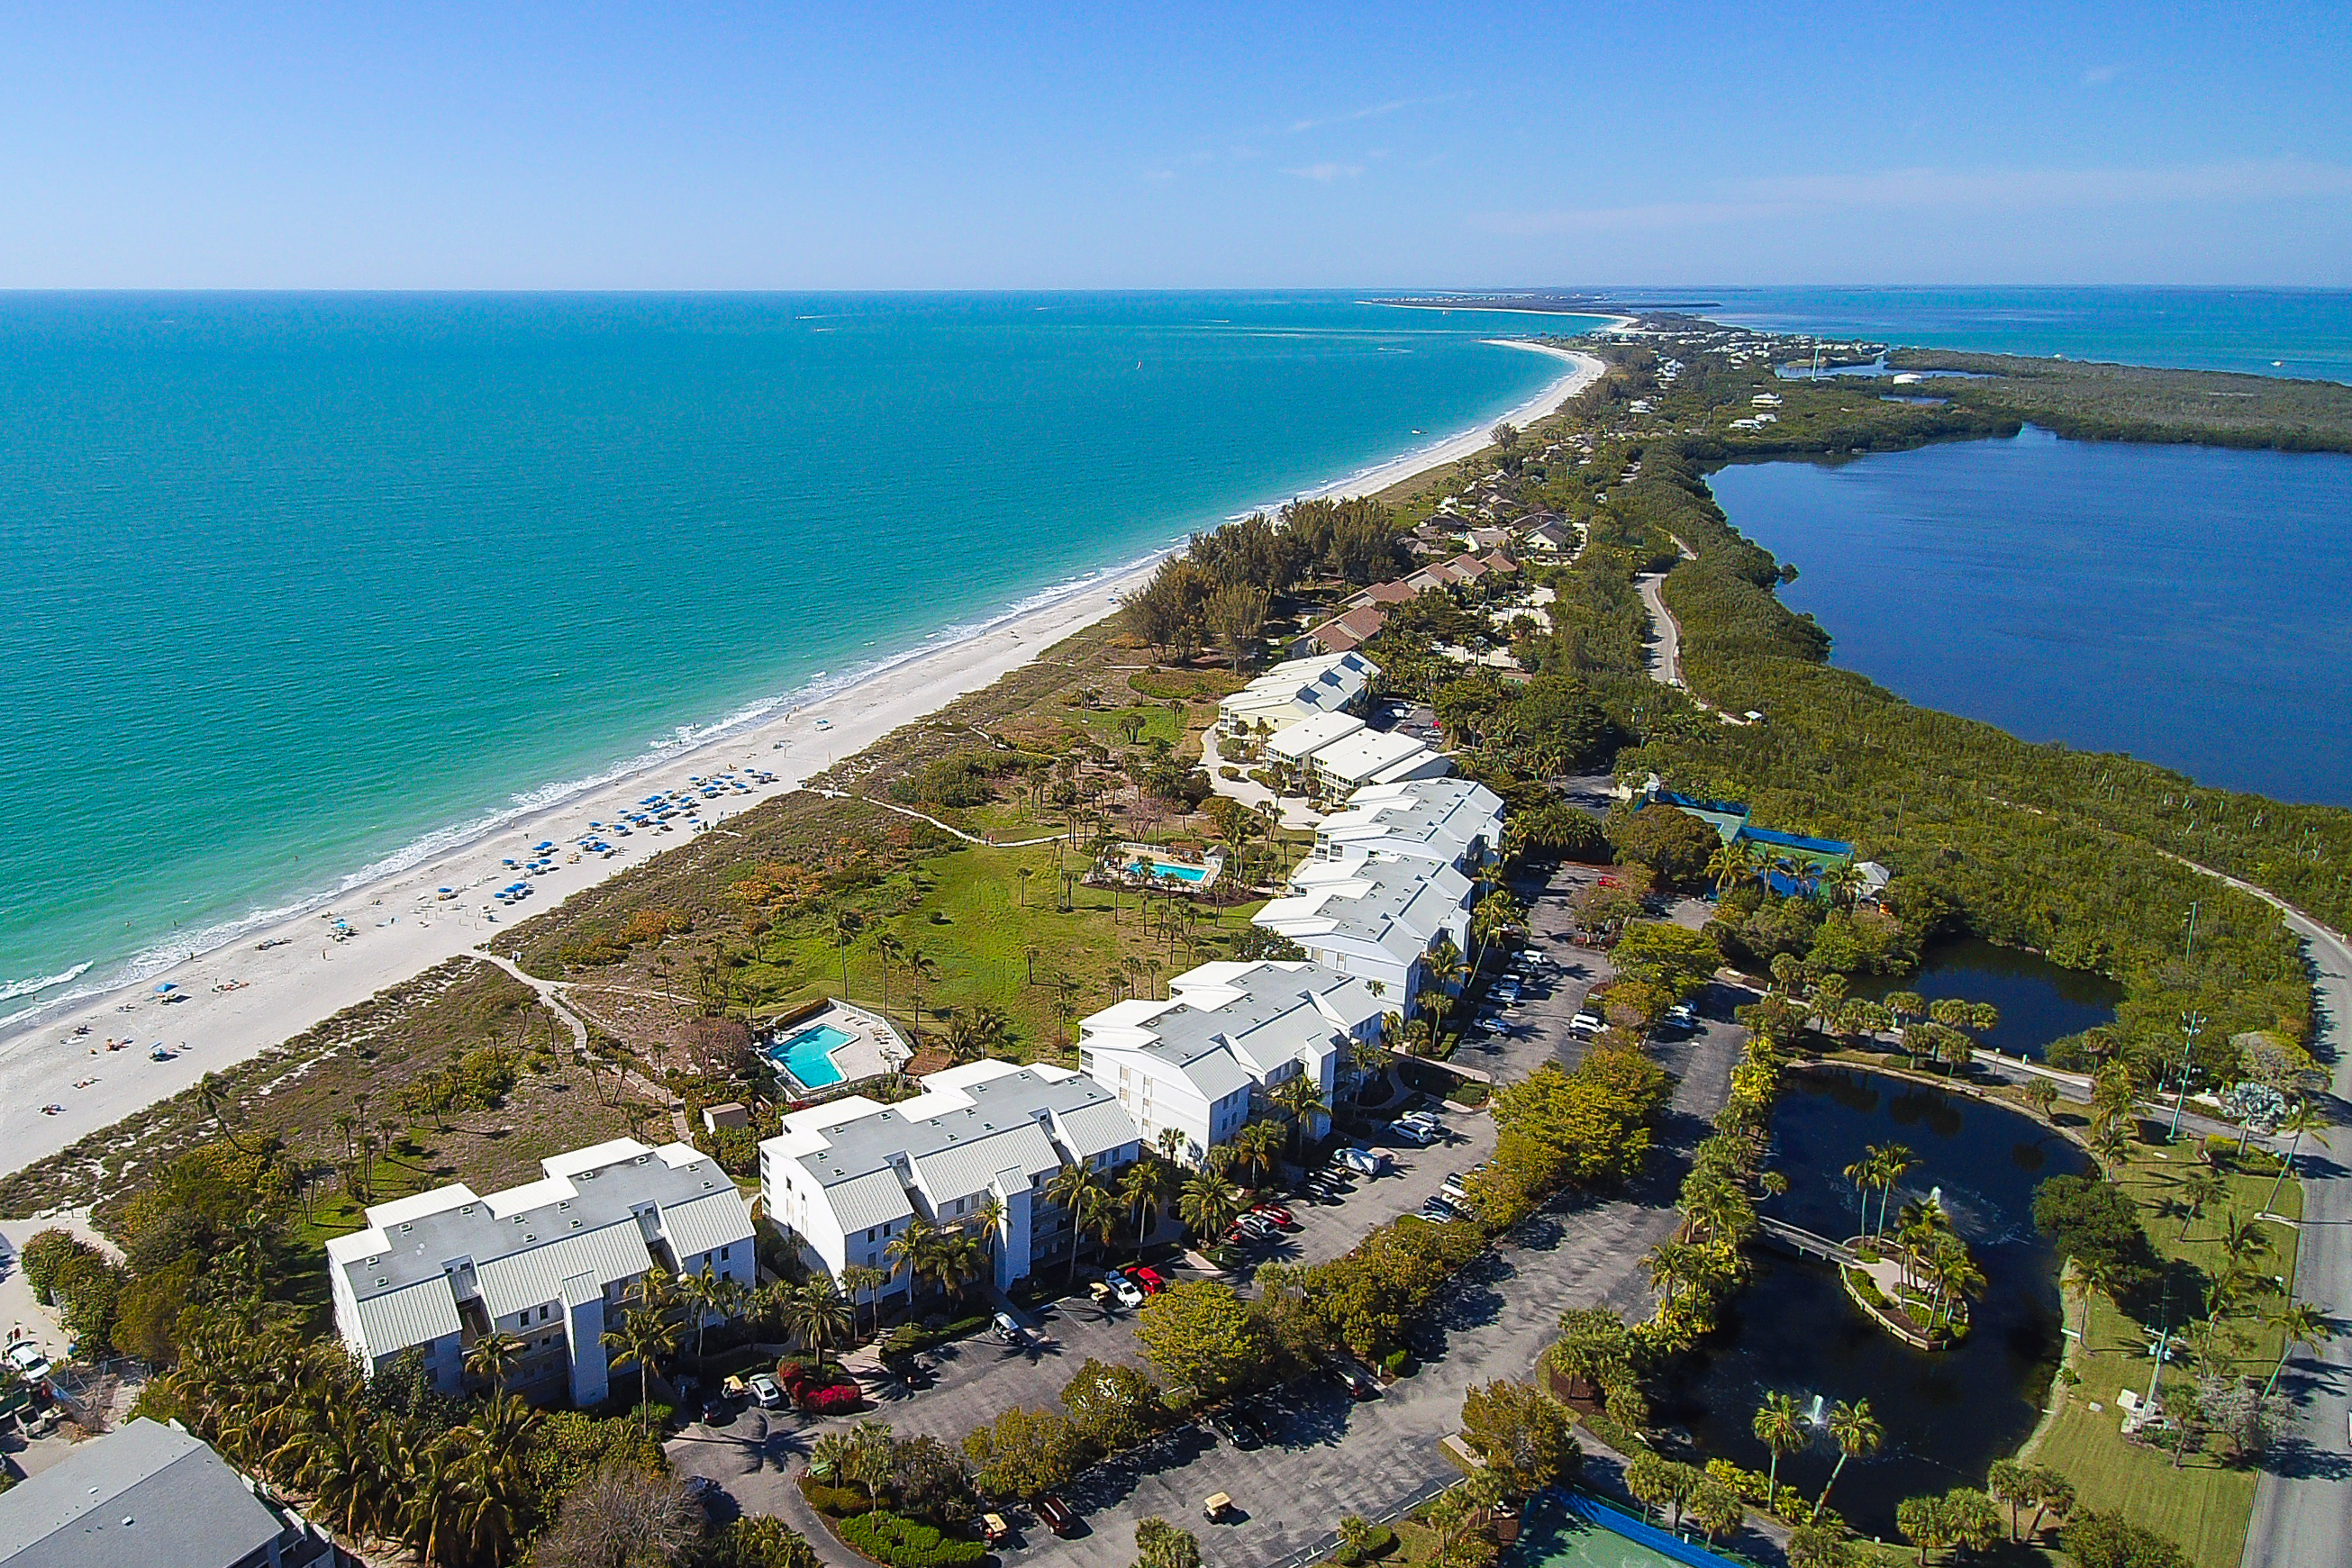 Aerial View of Beach Villas in Captiva Florida at South Seas Island Resort